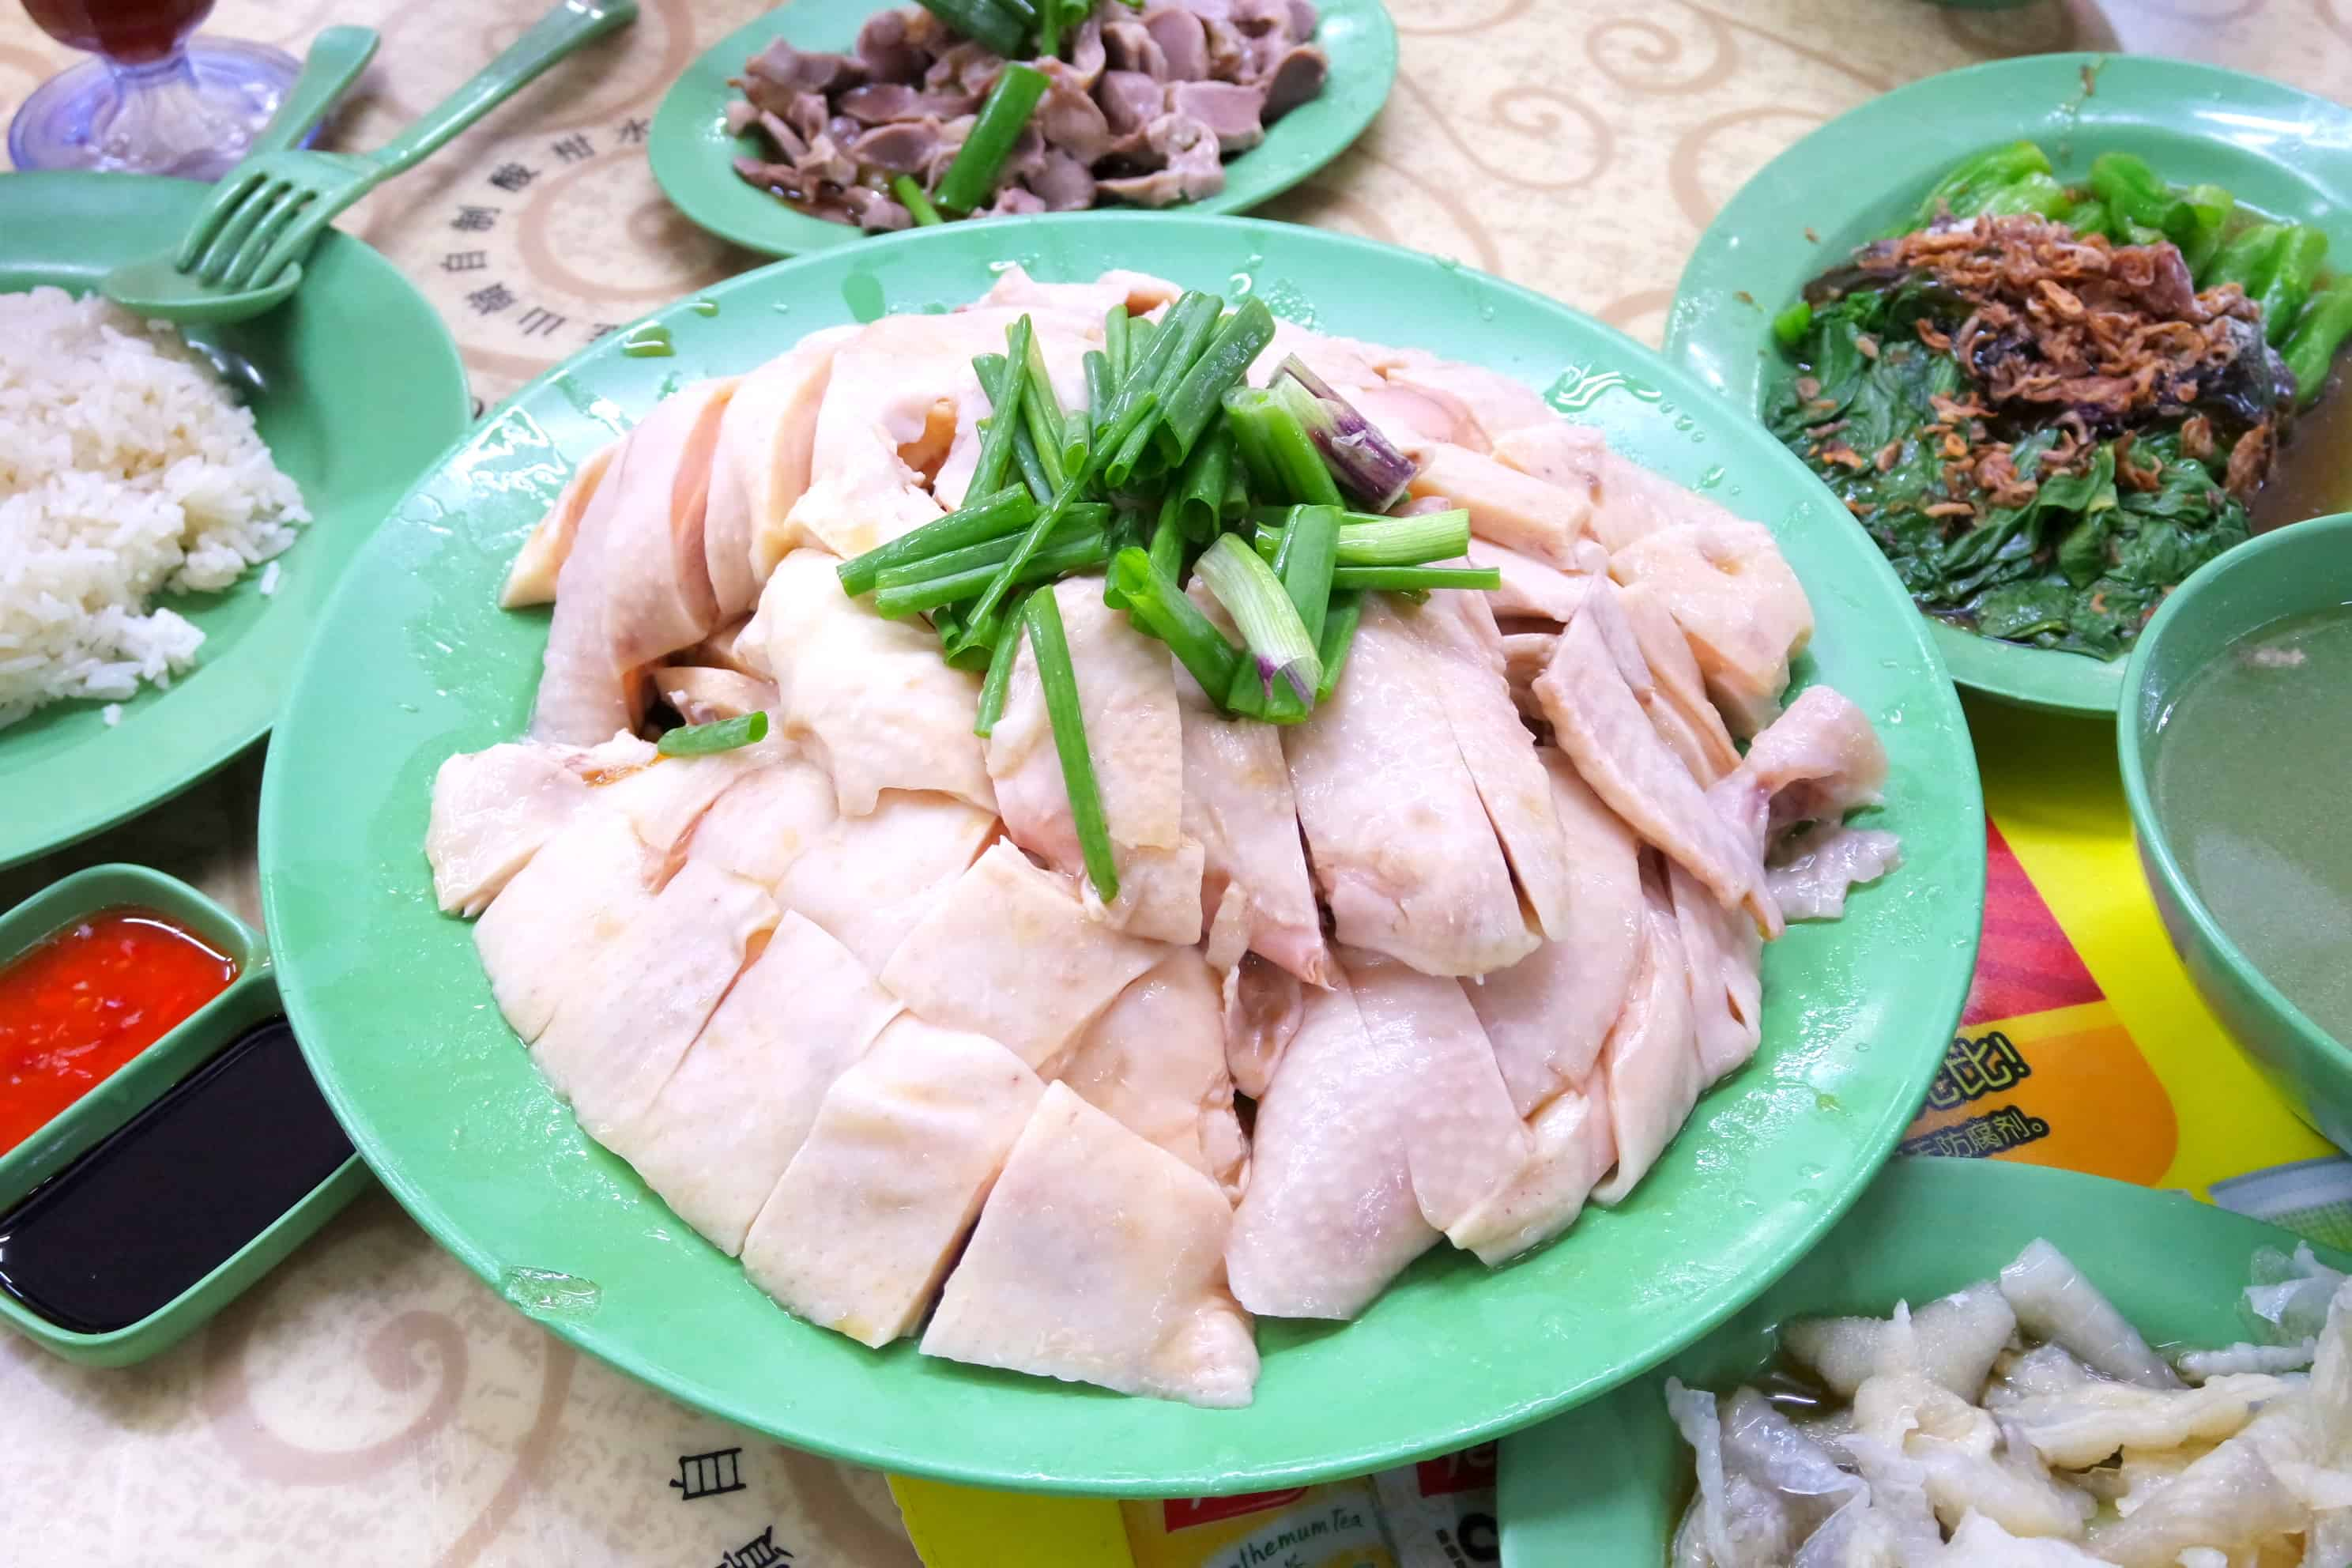 Ming Kee Chicken Rice At Bishan Chilled Chicken For You